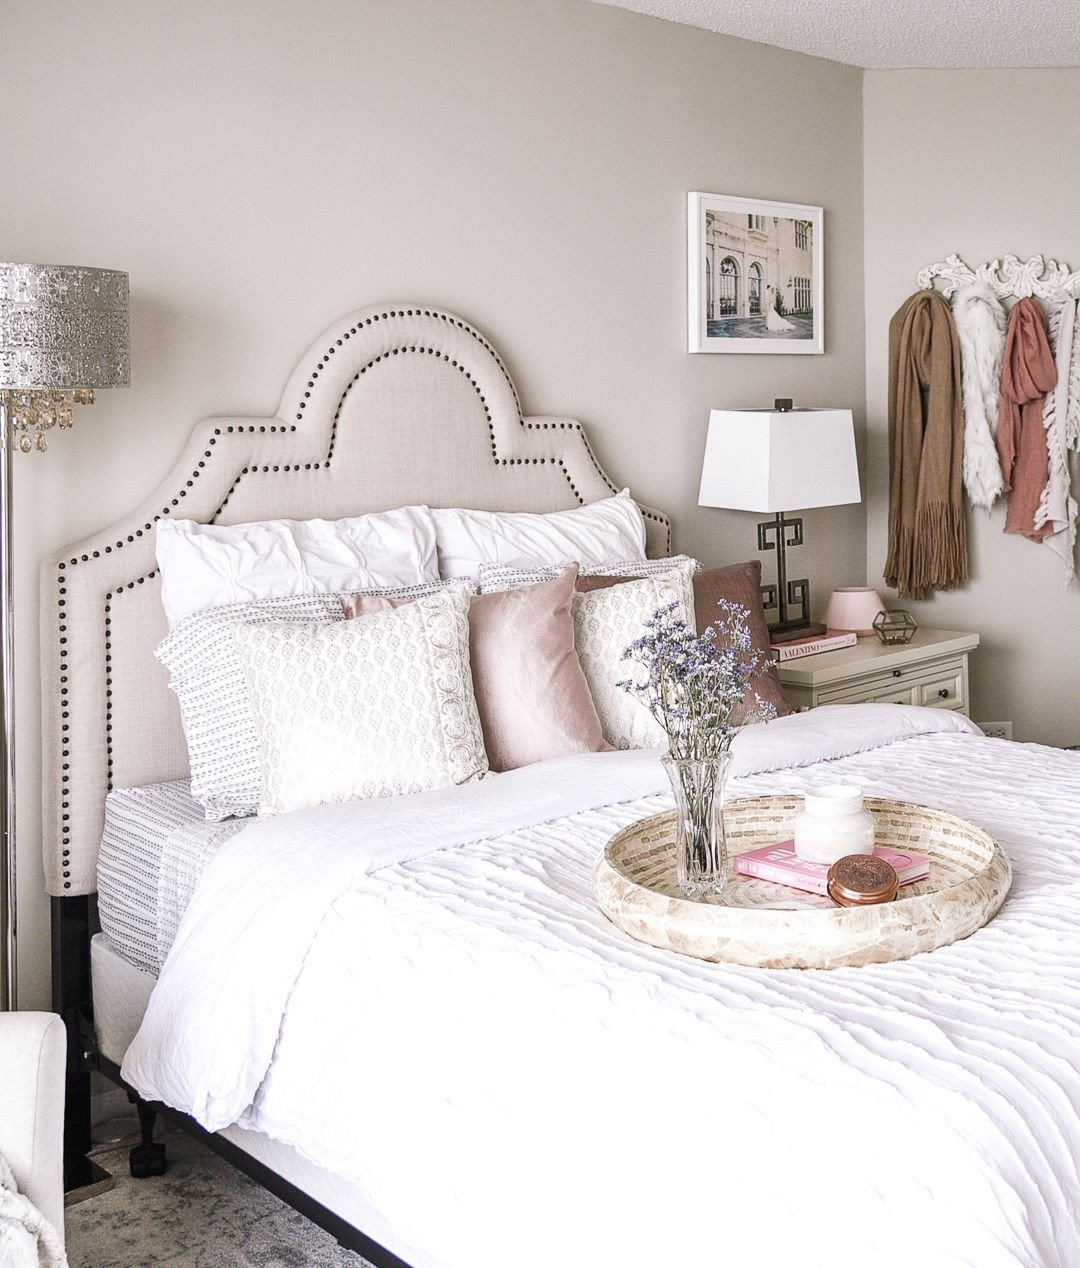 Pink and Gold Bedroom Ideas New Second Bedroom Ideas with Havenly and Pier 1